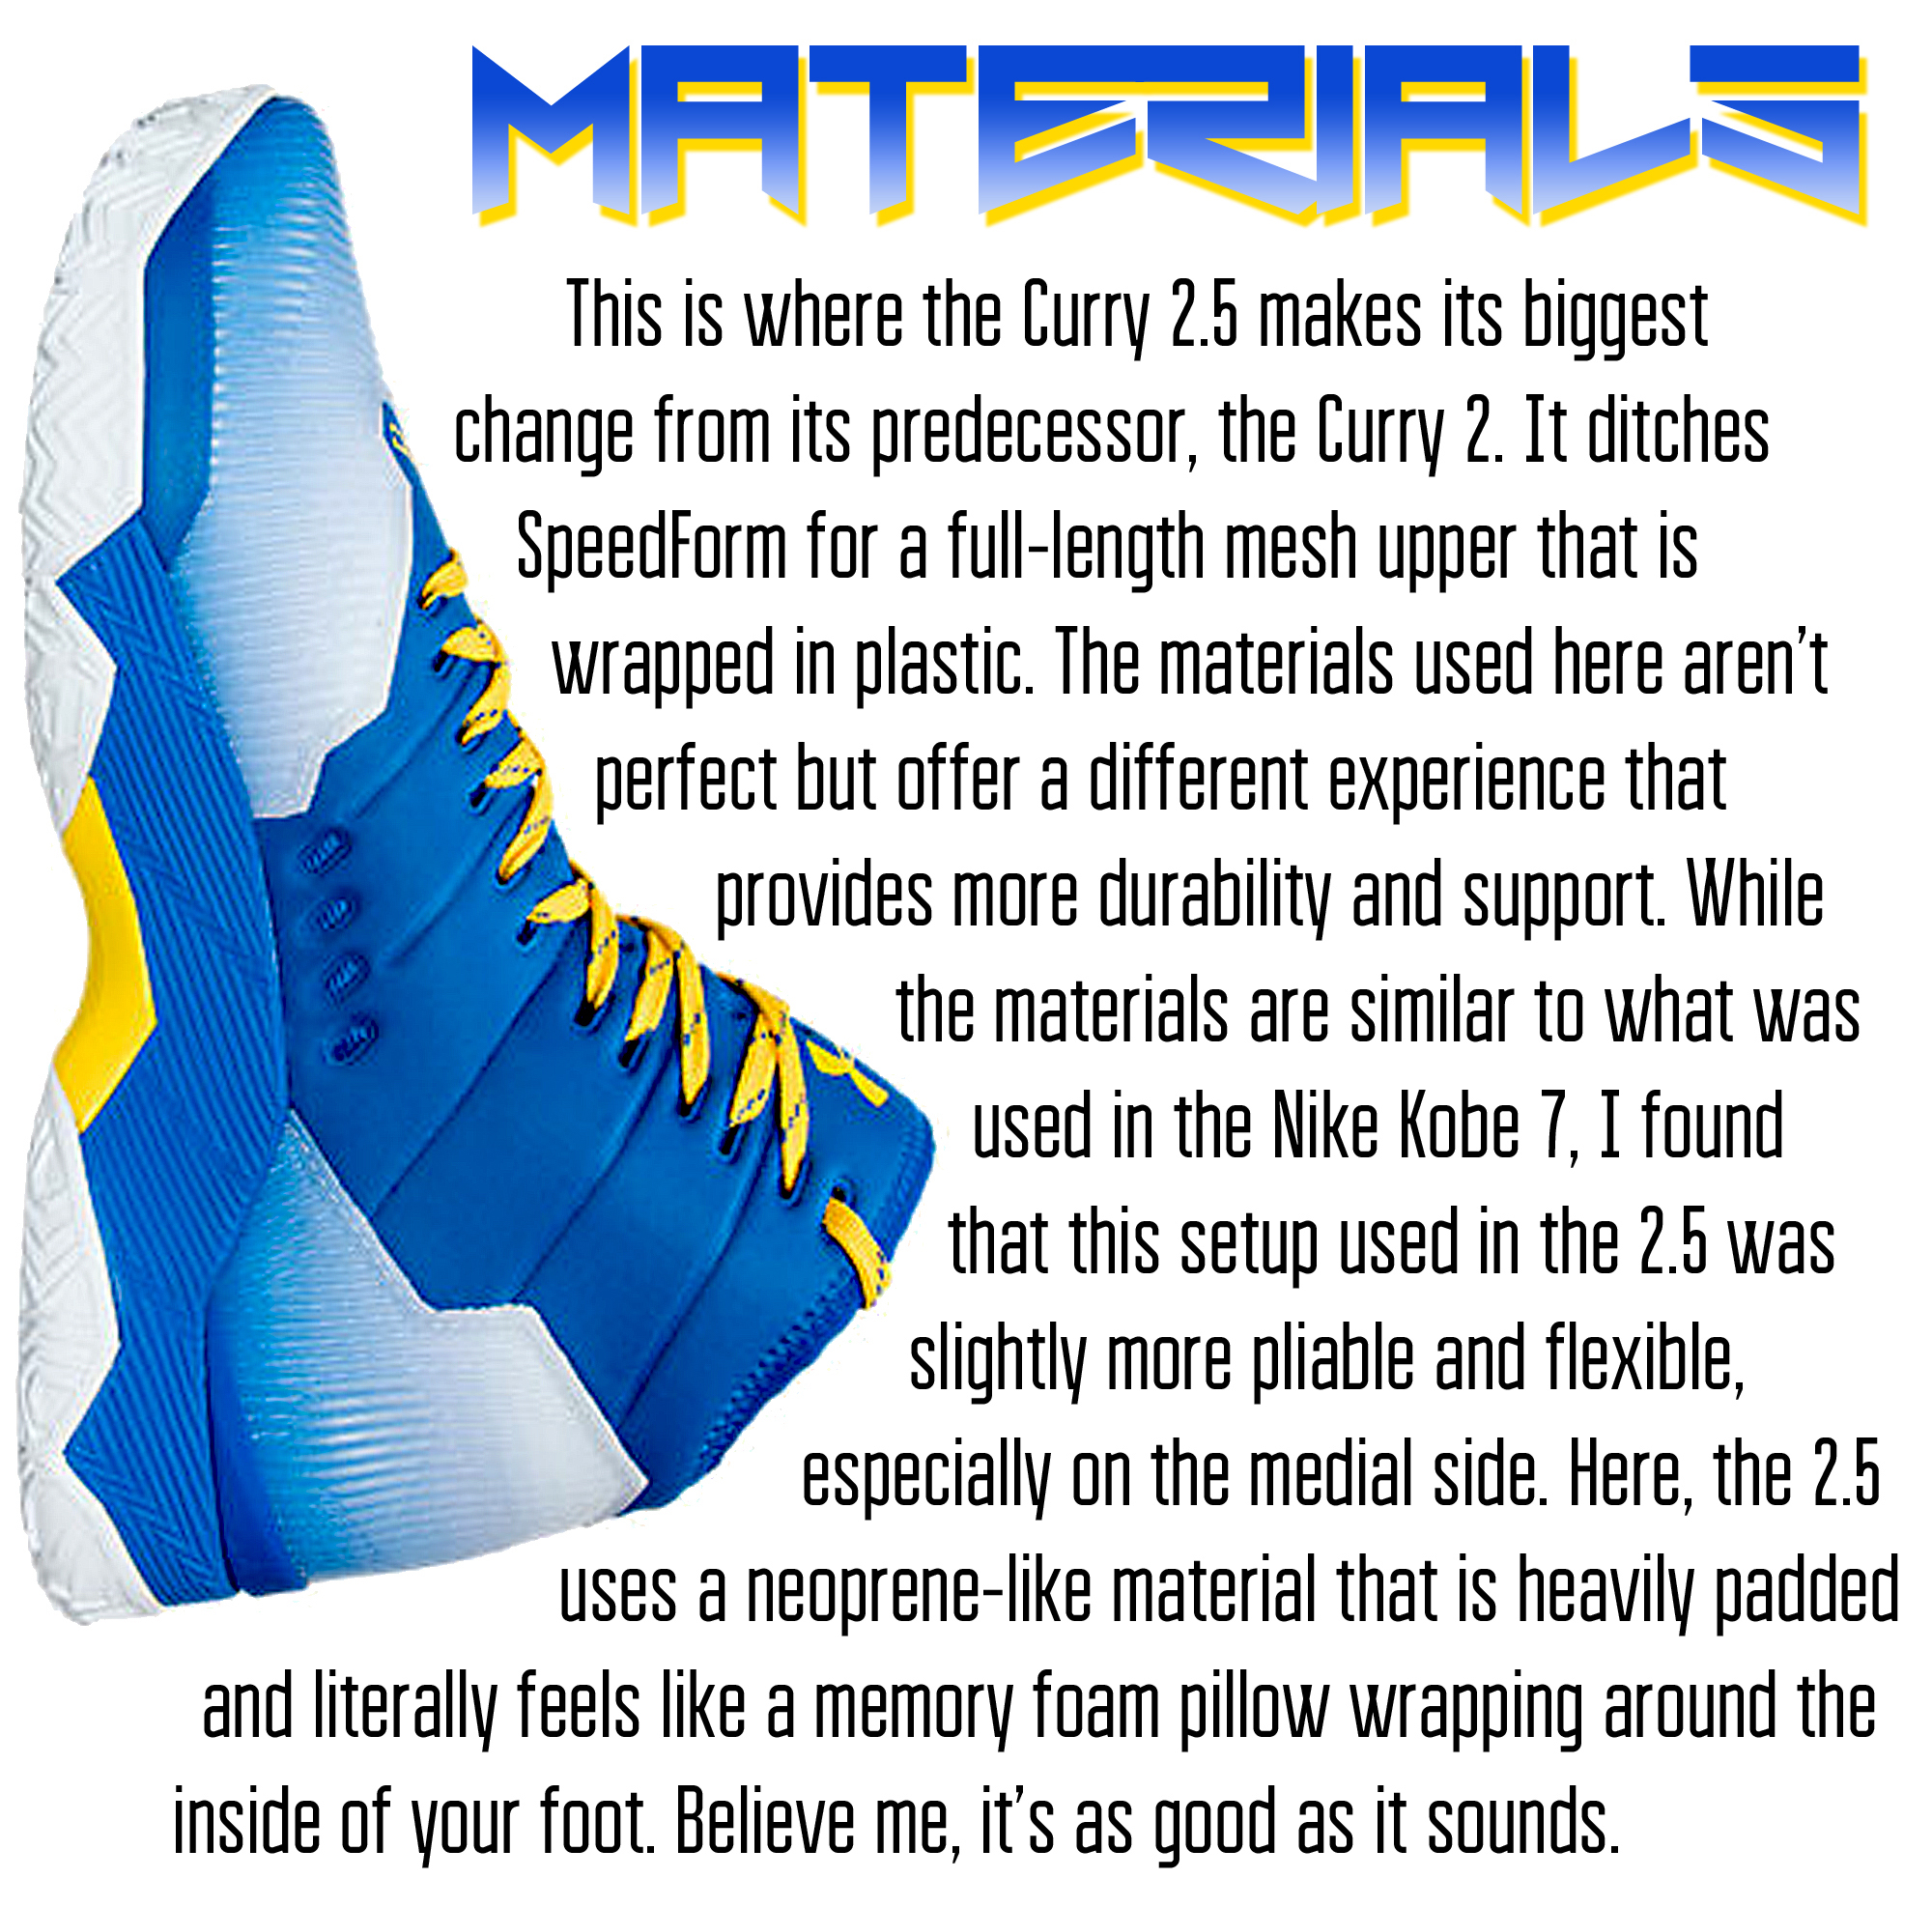 Curry 2.5 - Materials